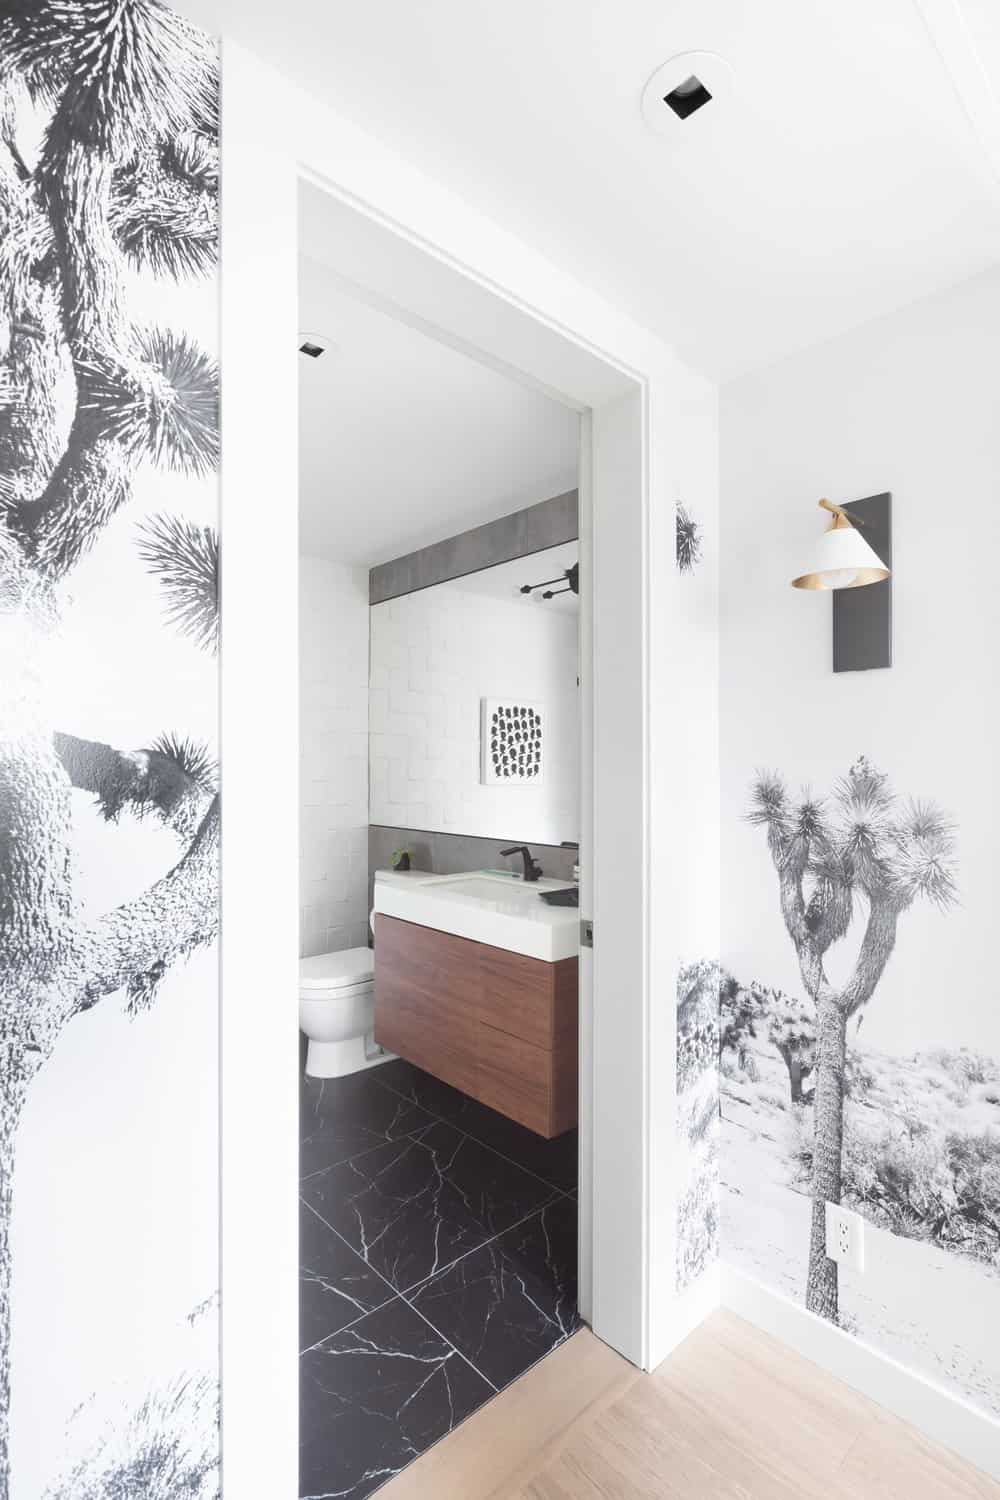 The hallway with the desert landscape wallpaper leads to a bathroom with a floating dark wooden vanity paired with a black flooring.